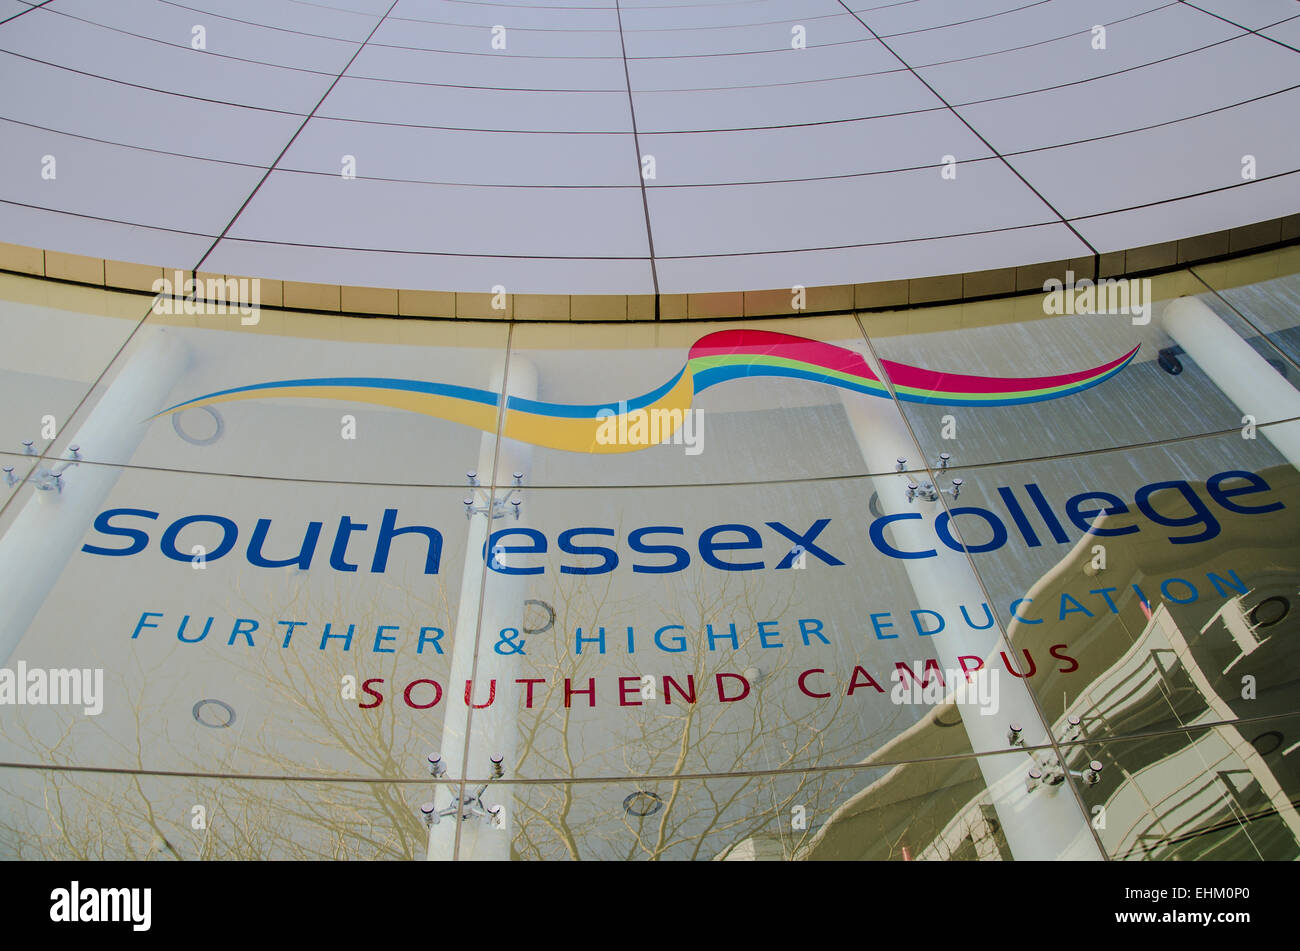 South Essex College of Further and Higher Education is a further education college located in Southend on Sea, Essex. - Stock Image